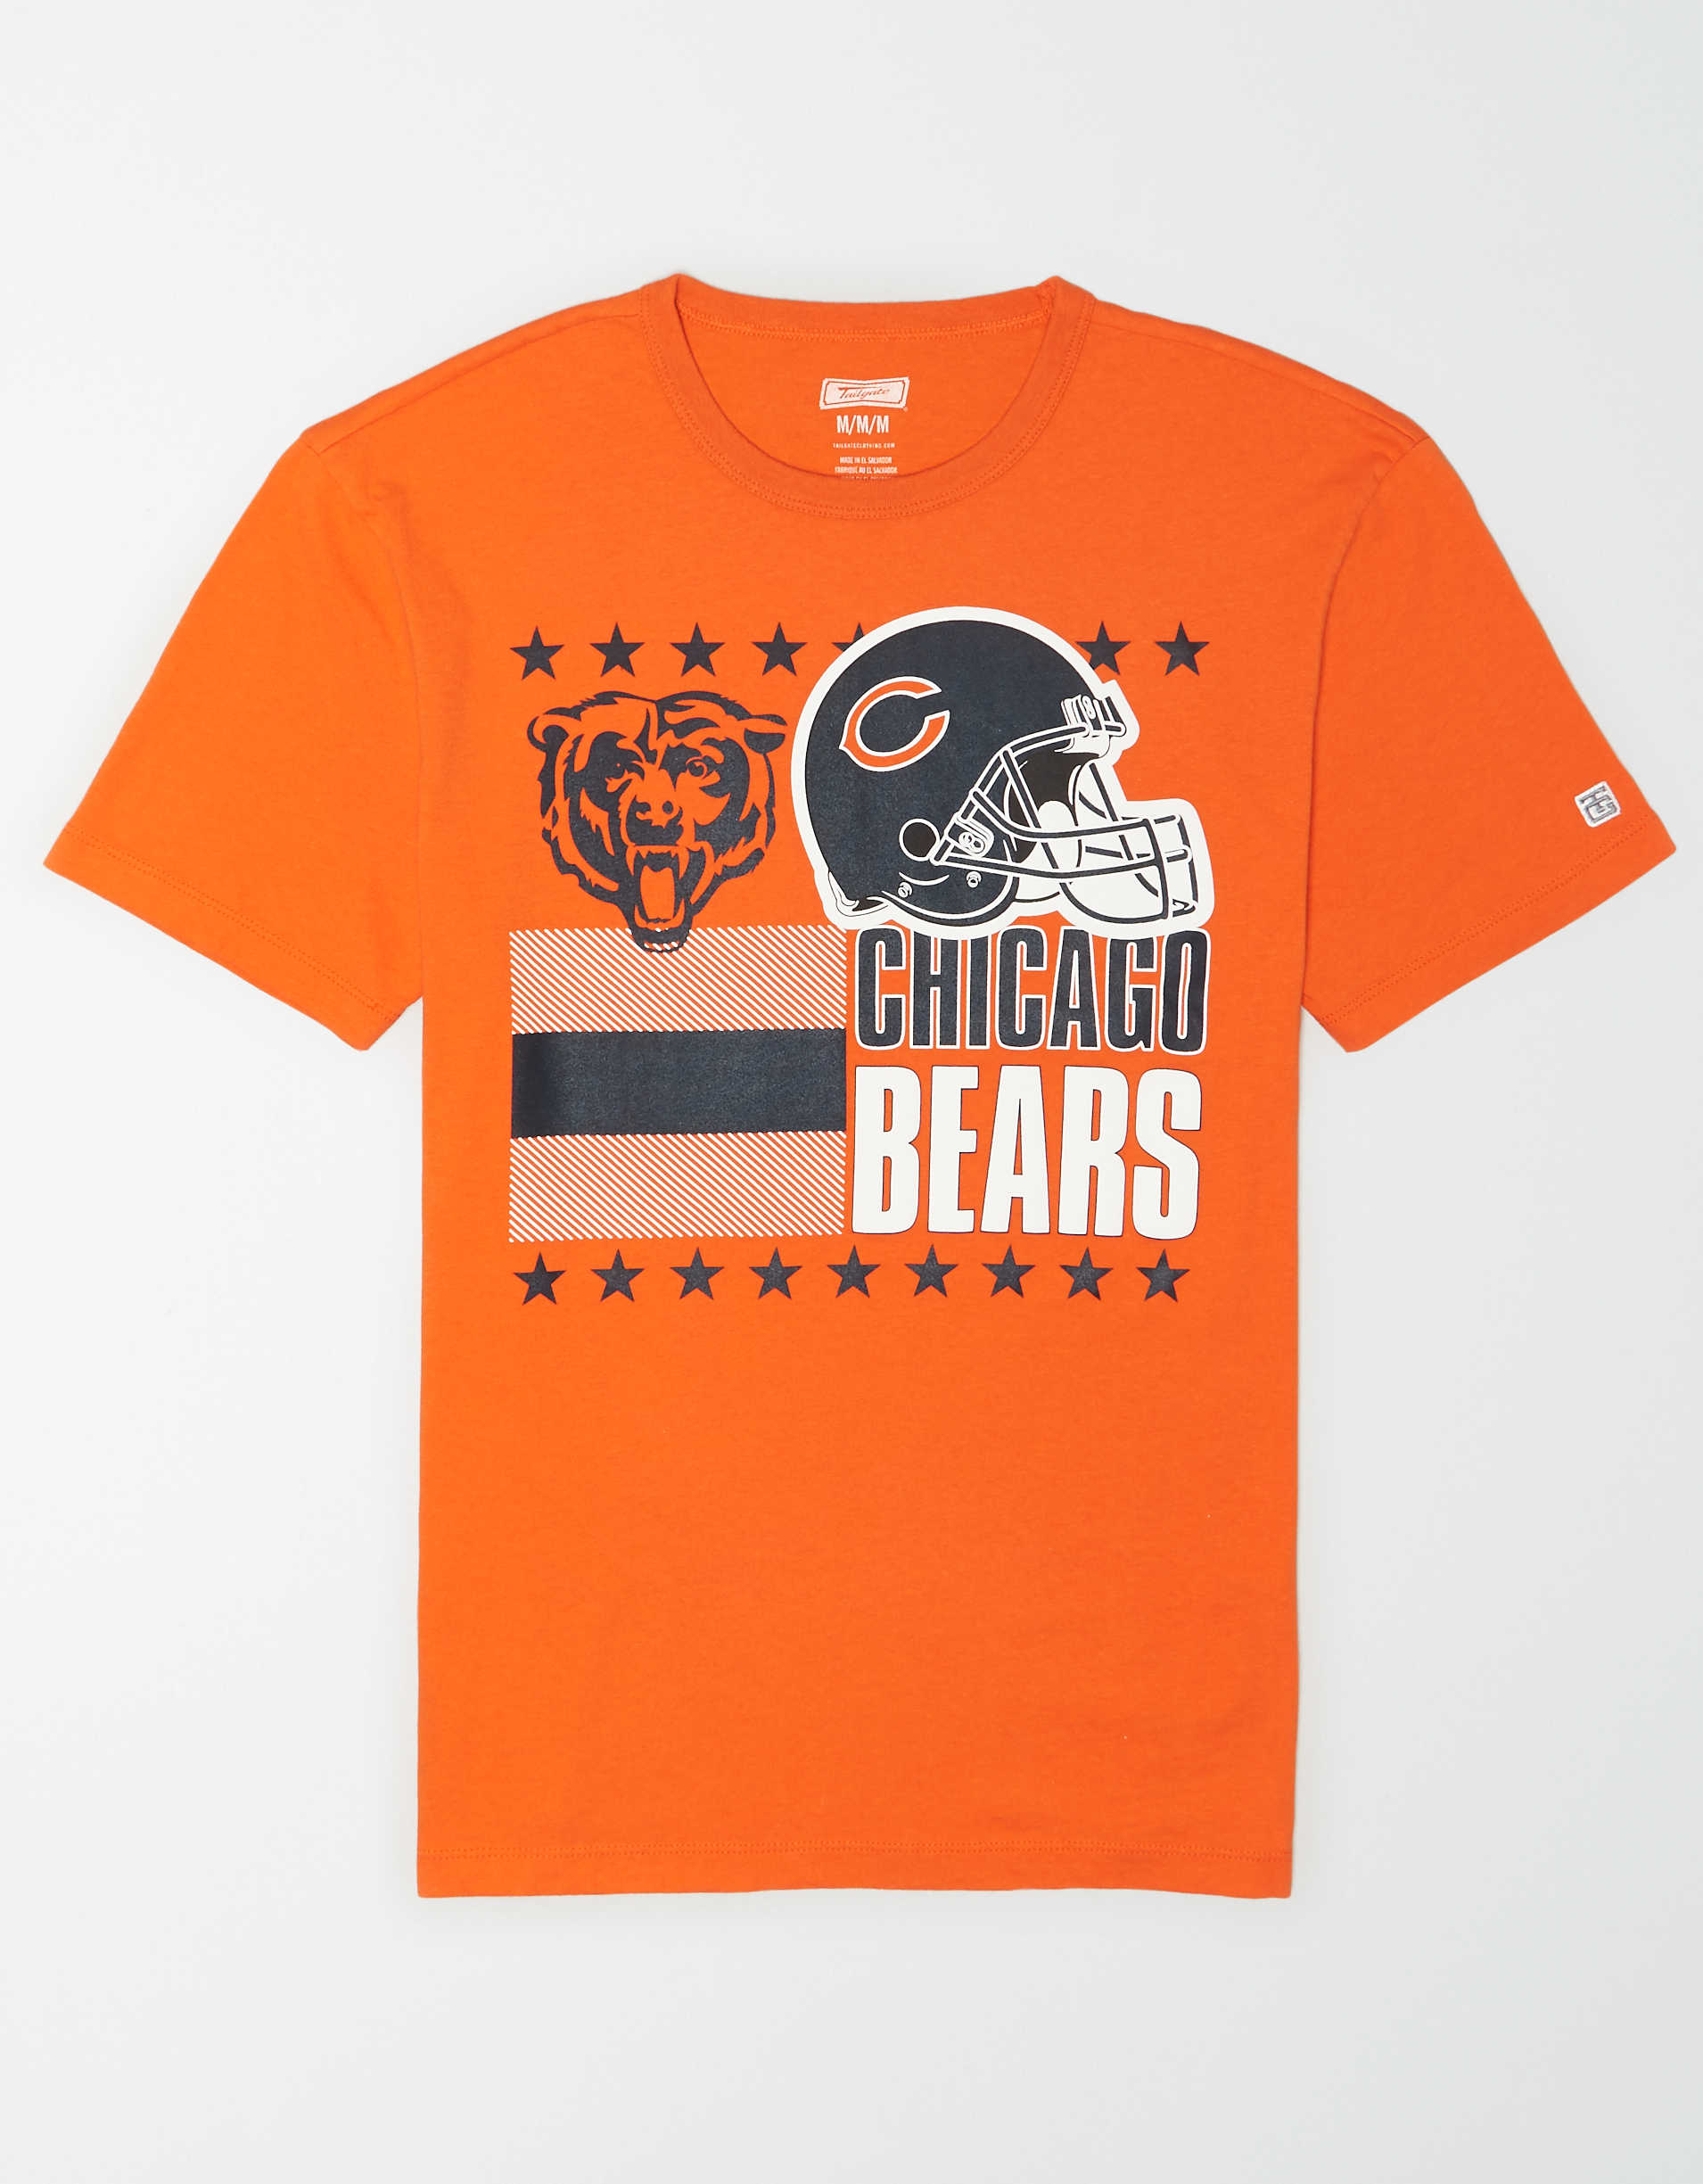 Tailgate Men's Chicago Bears T-Shirt